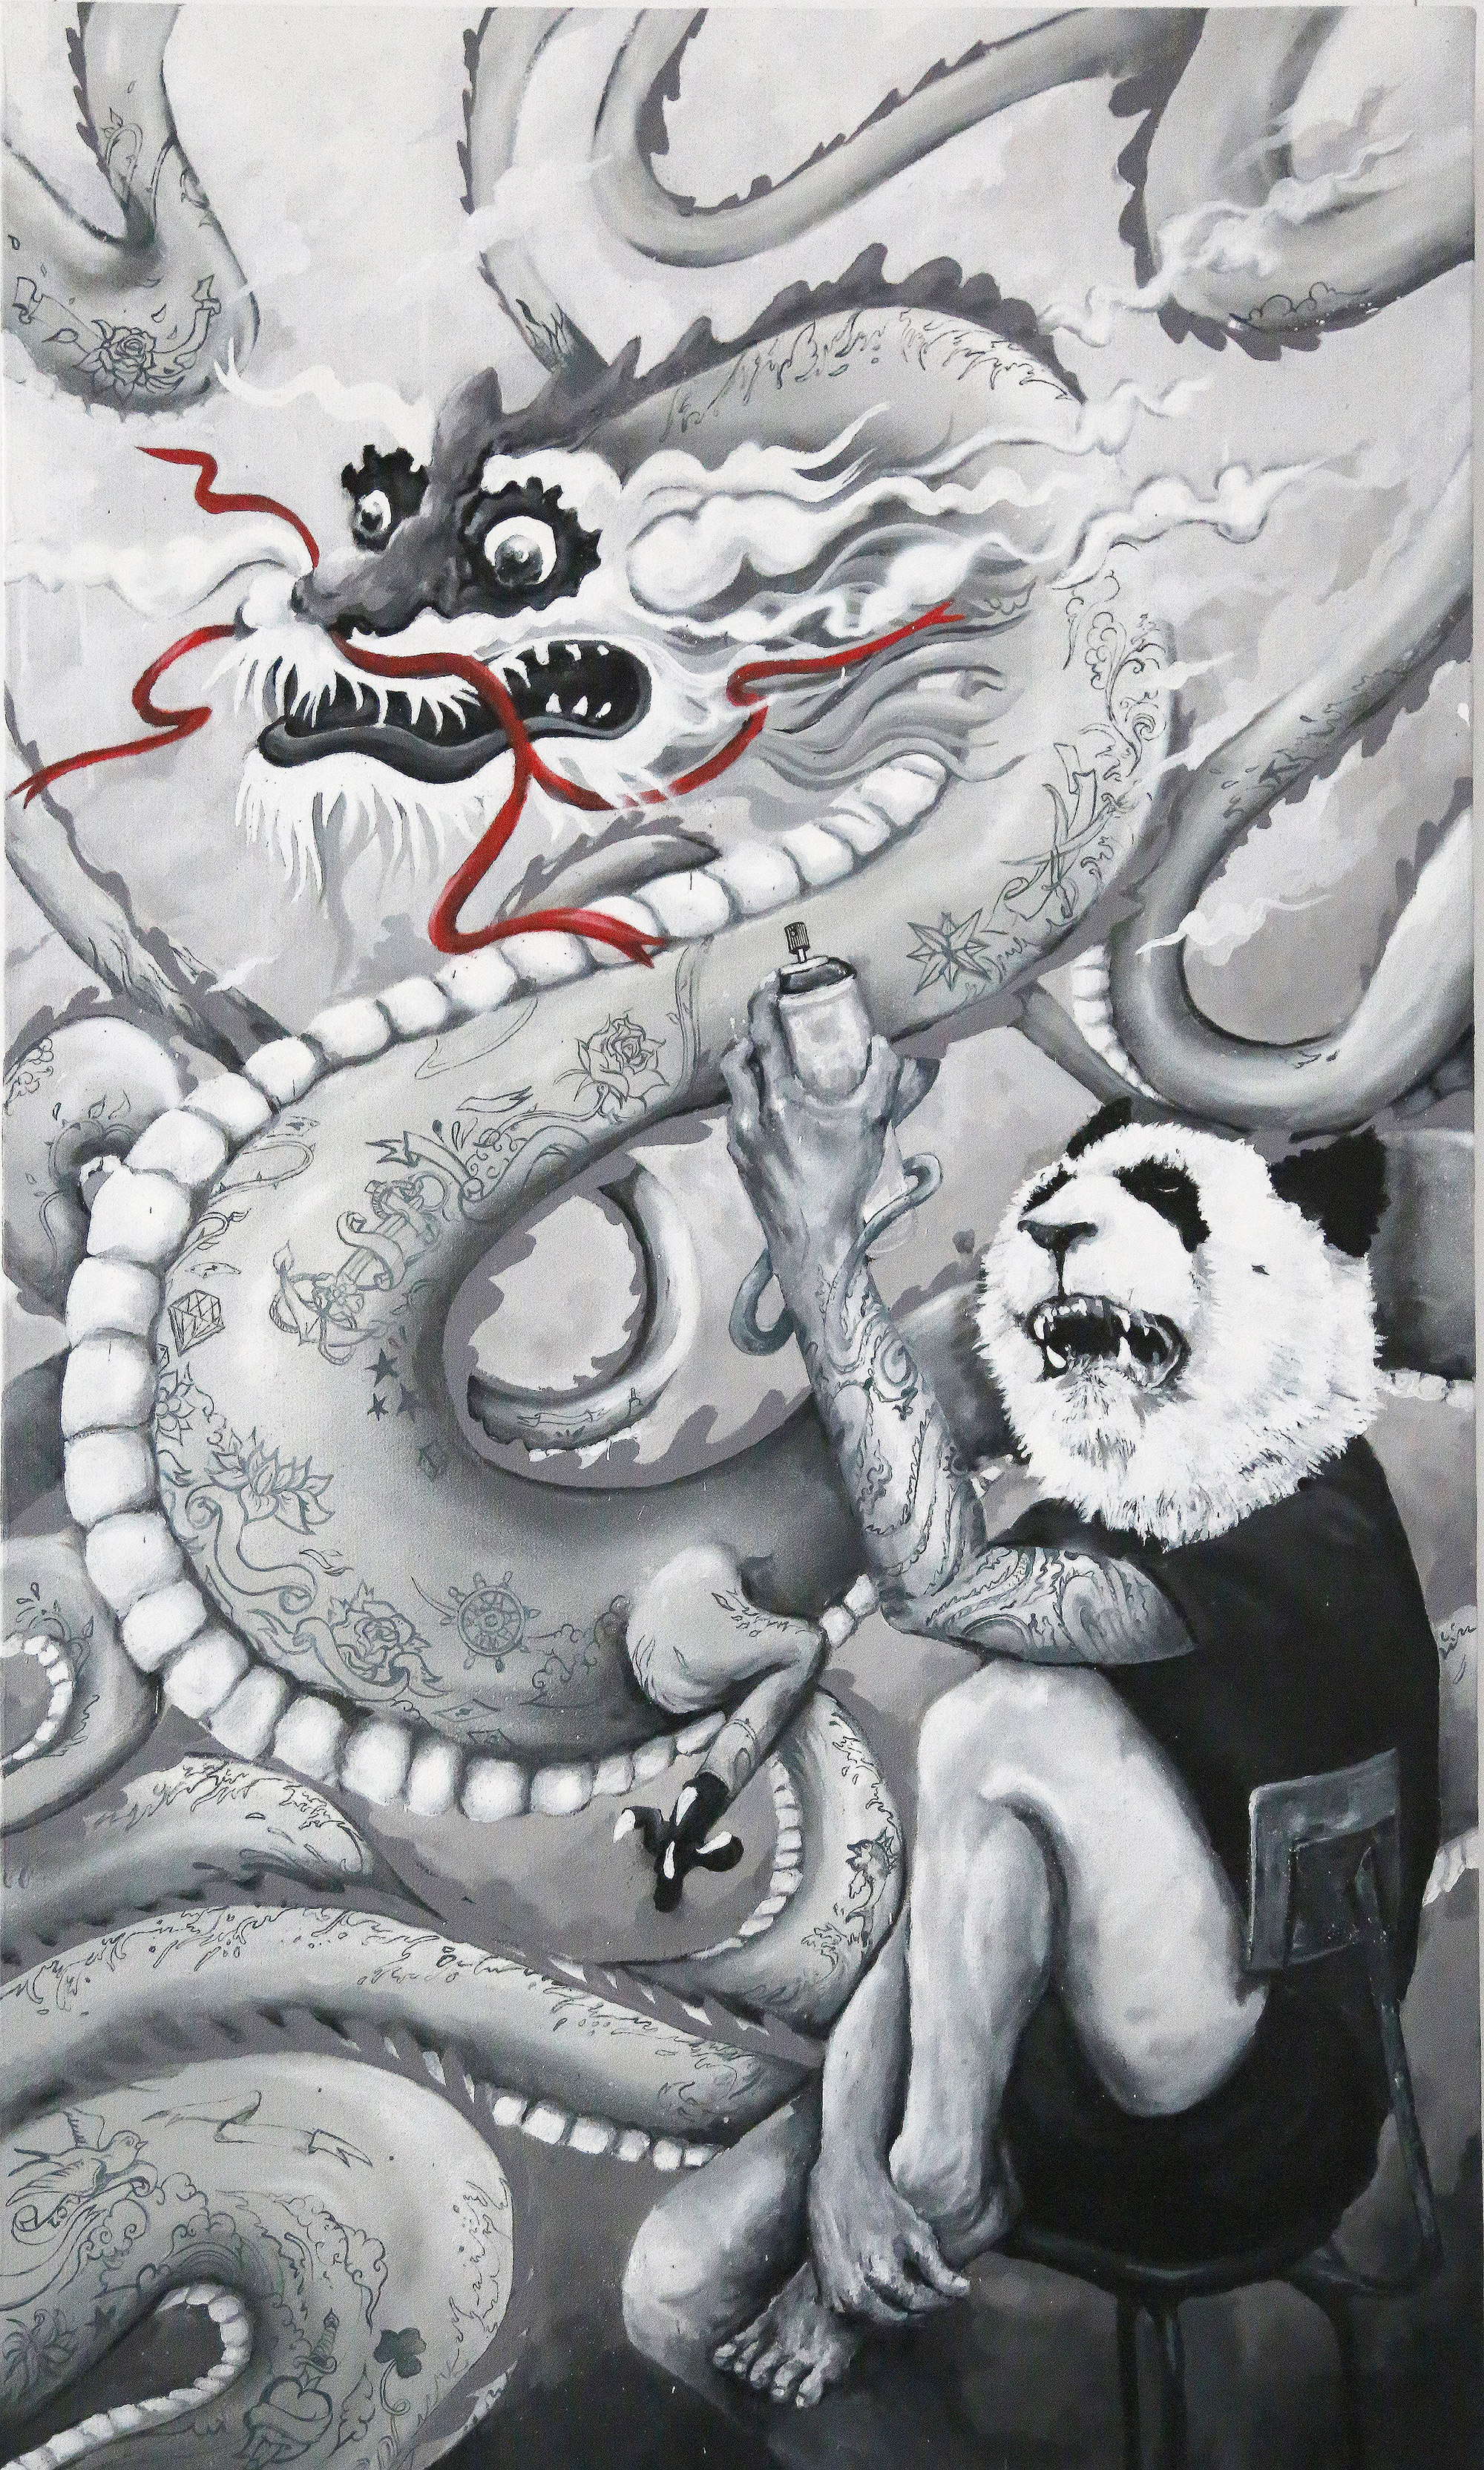 panda and dragon - Abeil - Jardin Orange - Street art 974